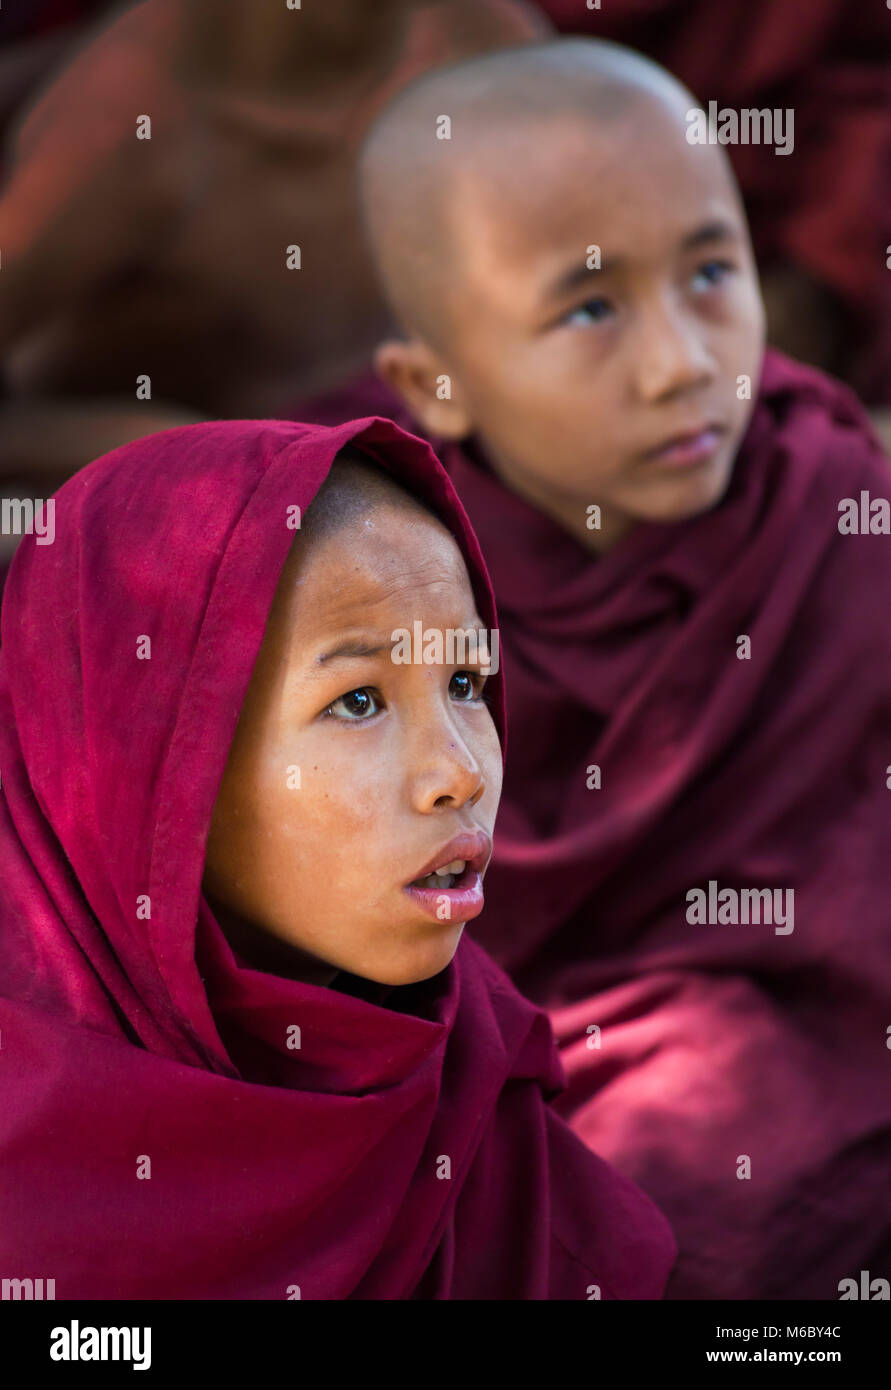 young novice monks faces watching television at Aung Myae Oo Monastic Free Education School, Sagaing, Mandalay, - Stock Image